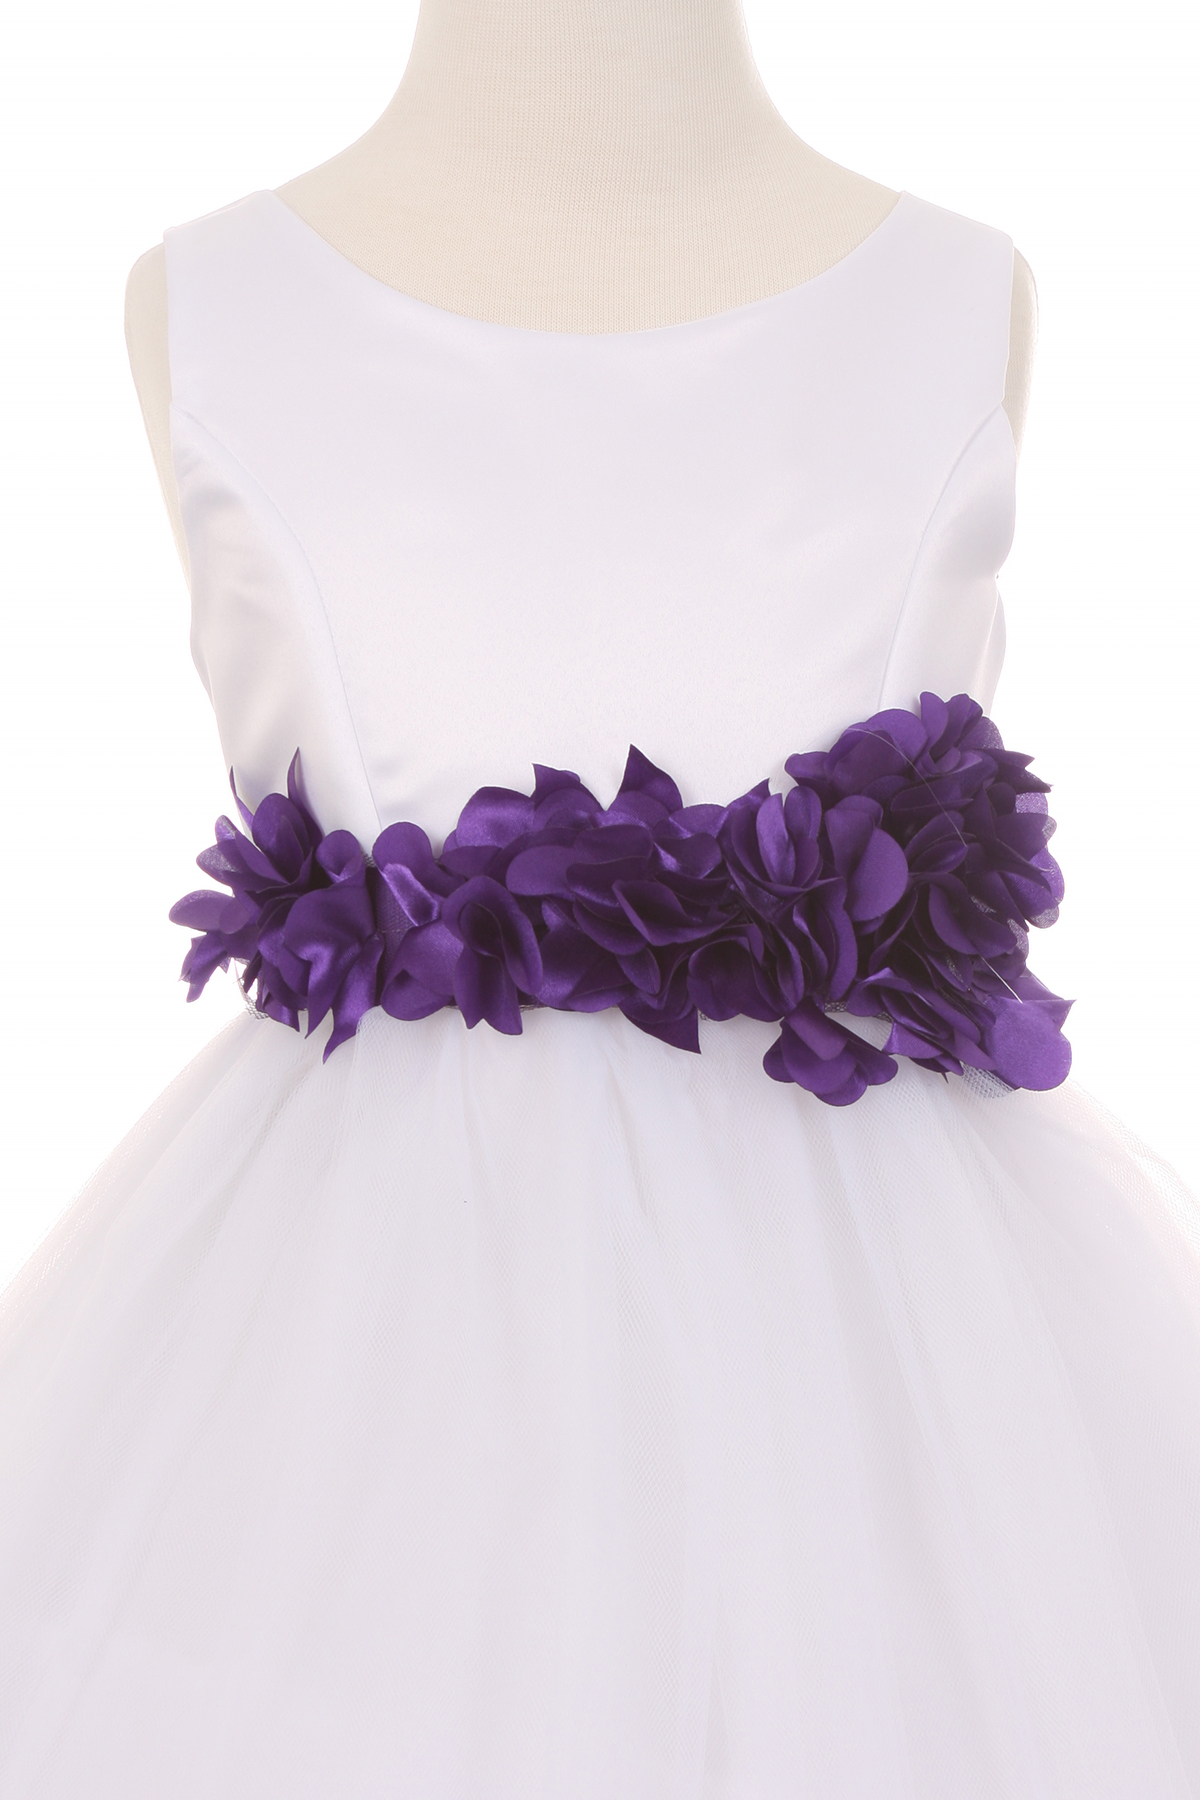 white dress with purple flower sash